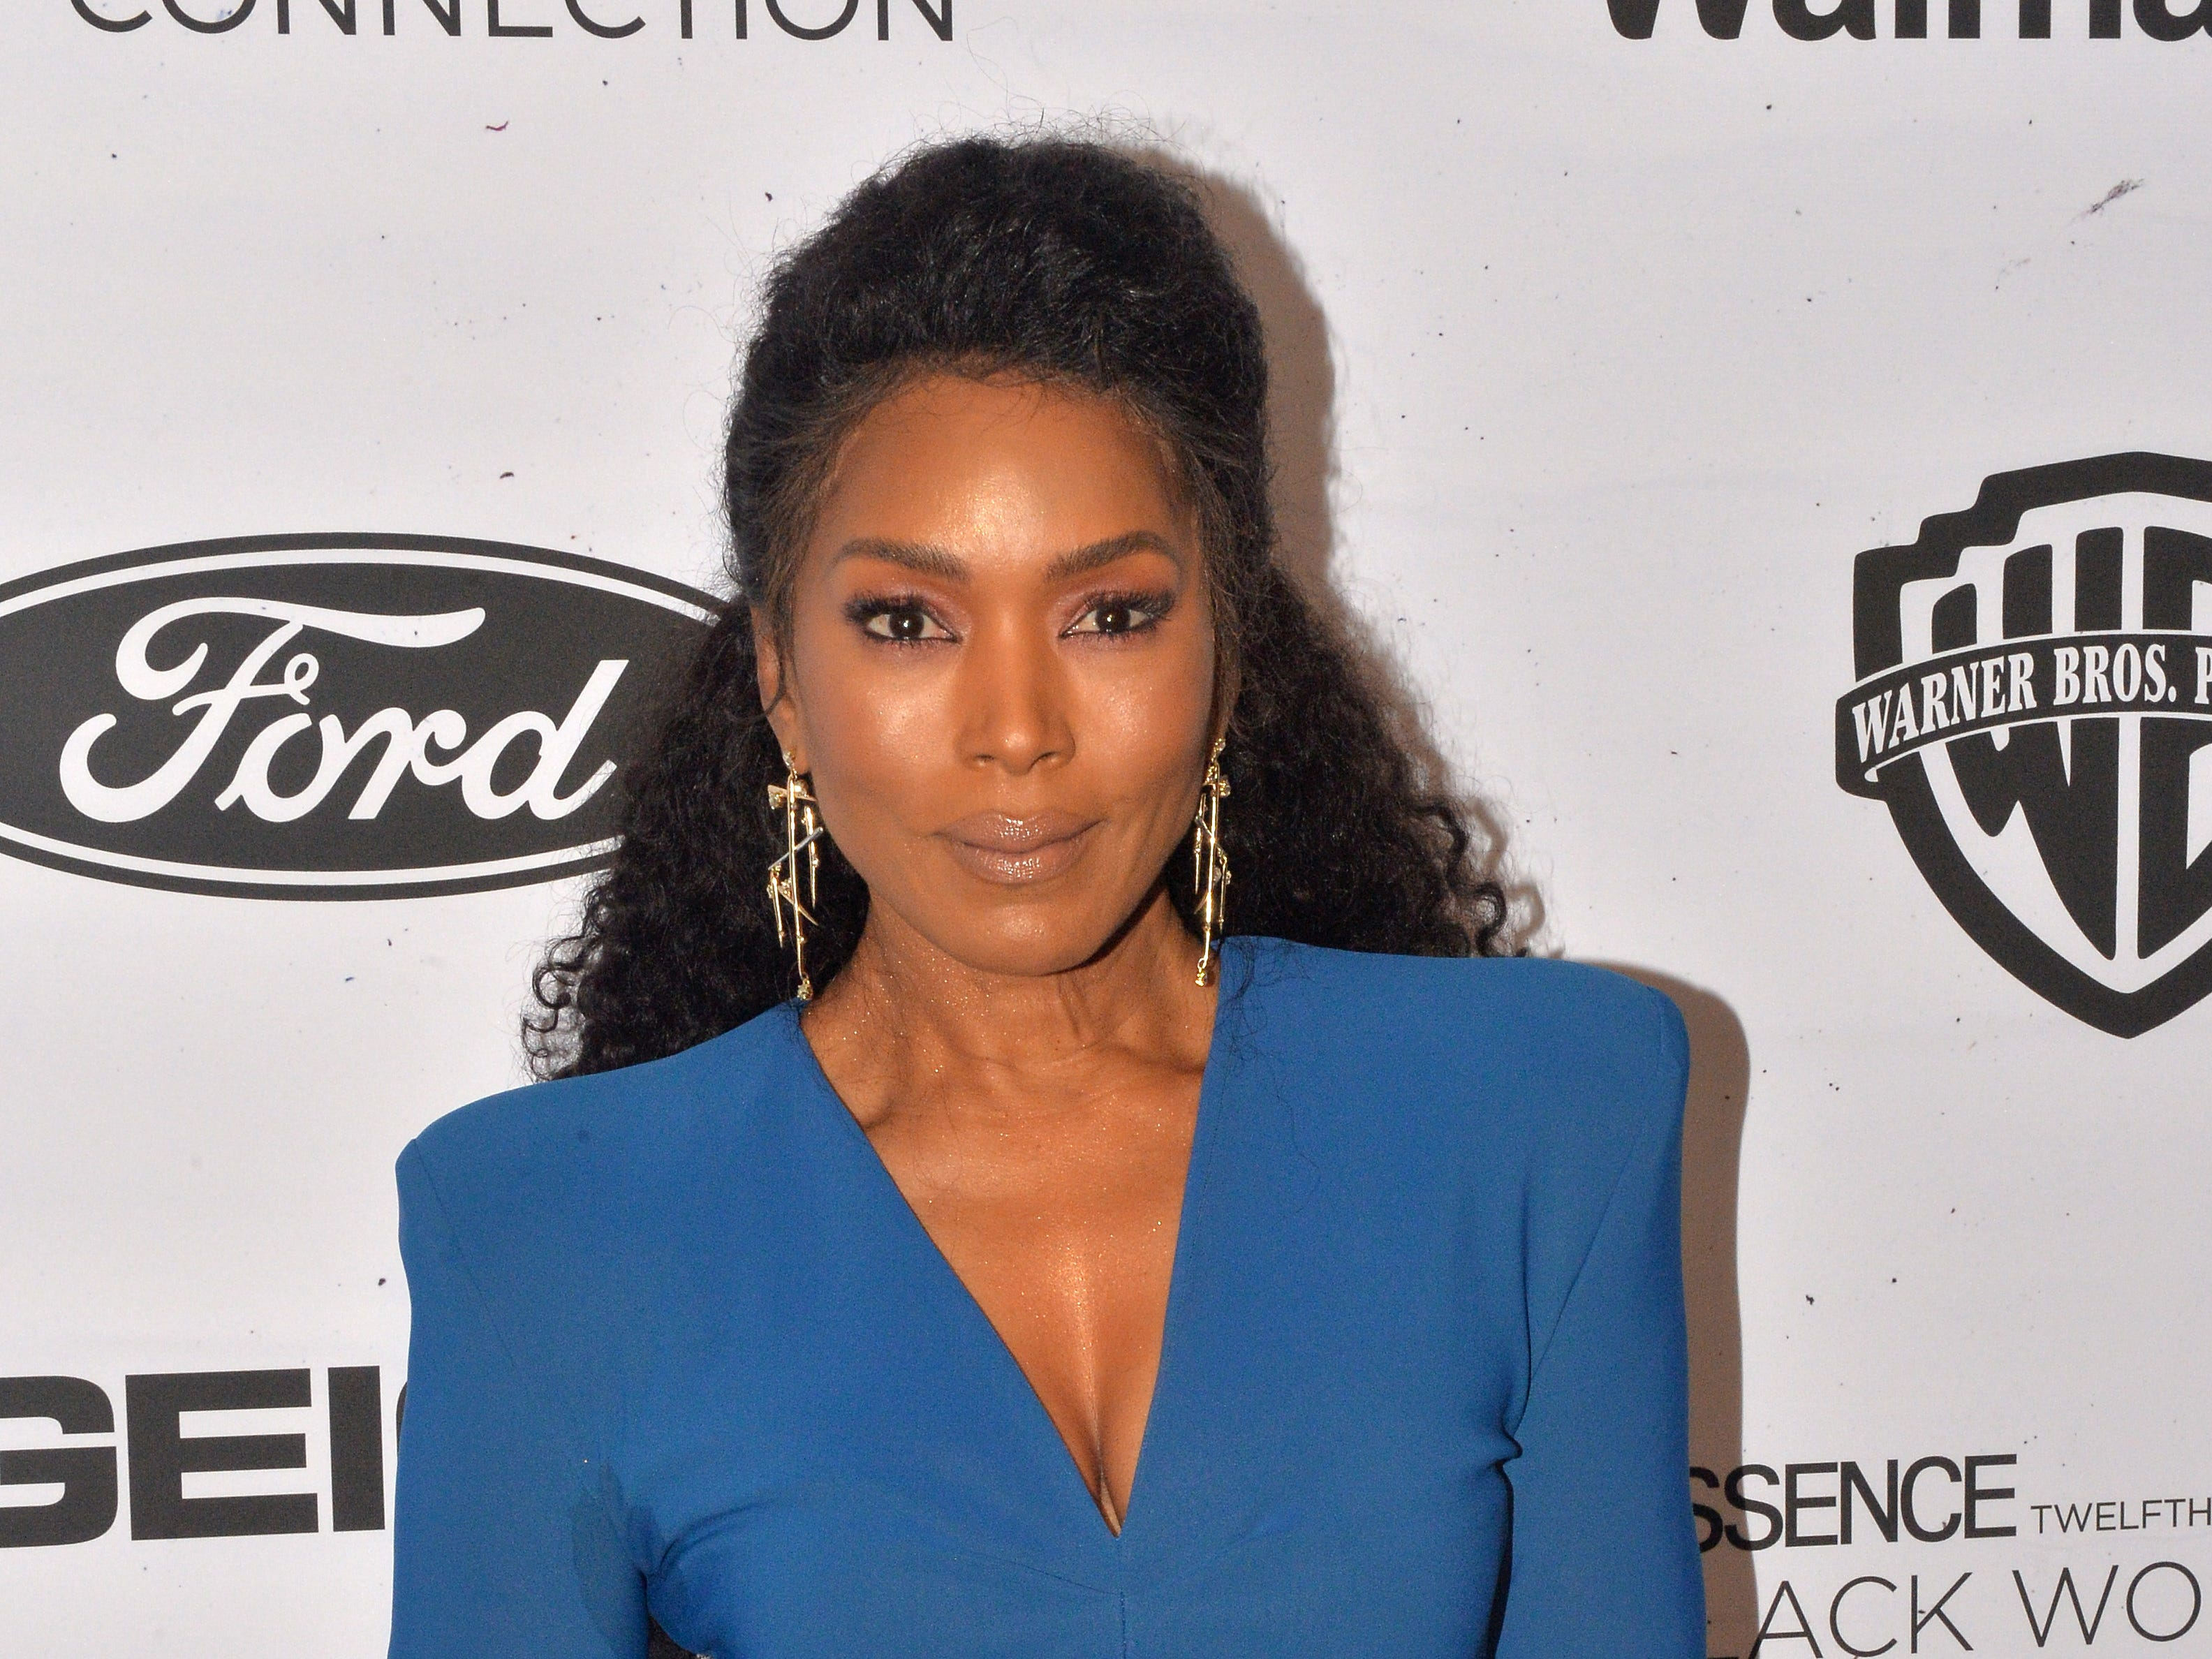 BEVERLY HILLS, CALIFORNIA - FEBRUARY 21: Angela Bassett arrives at the 2019 Essence Black Women In Hollywood Awards at the Beverly Wilshire Four Seasons Hotel on February 21, 2019 in Beverly Hills, California. (Photo by Jerod Harris/FilmMagic) ORG XMIT: 775282713 ORIG FILE ID: 1131258381